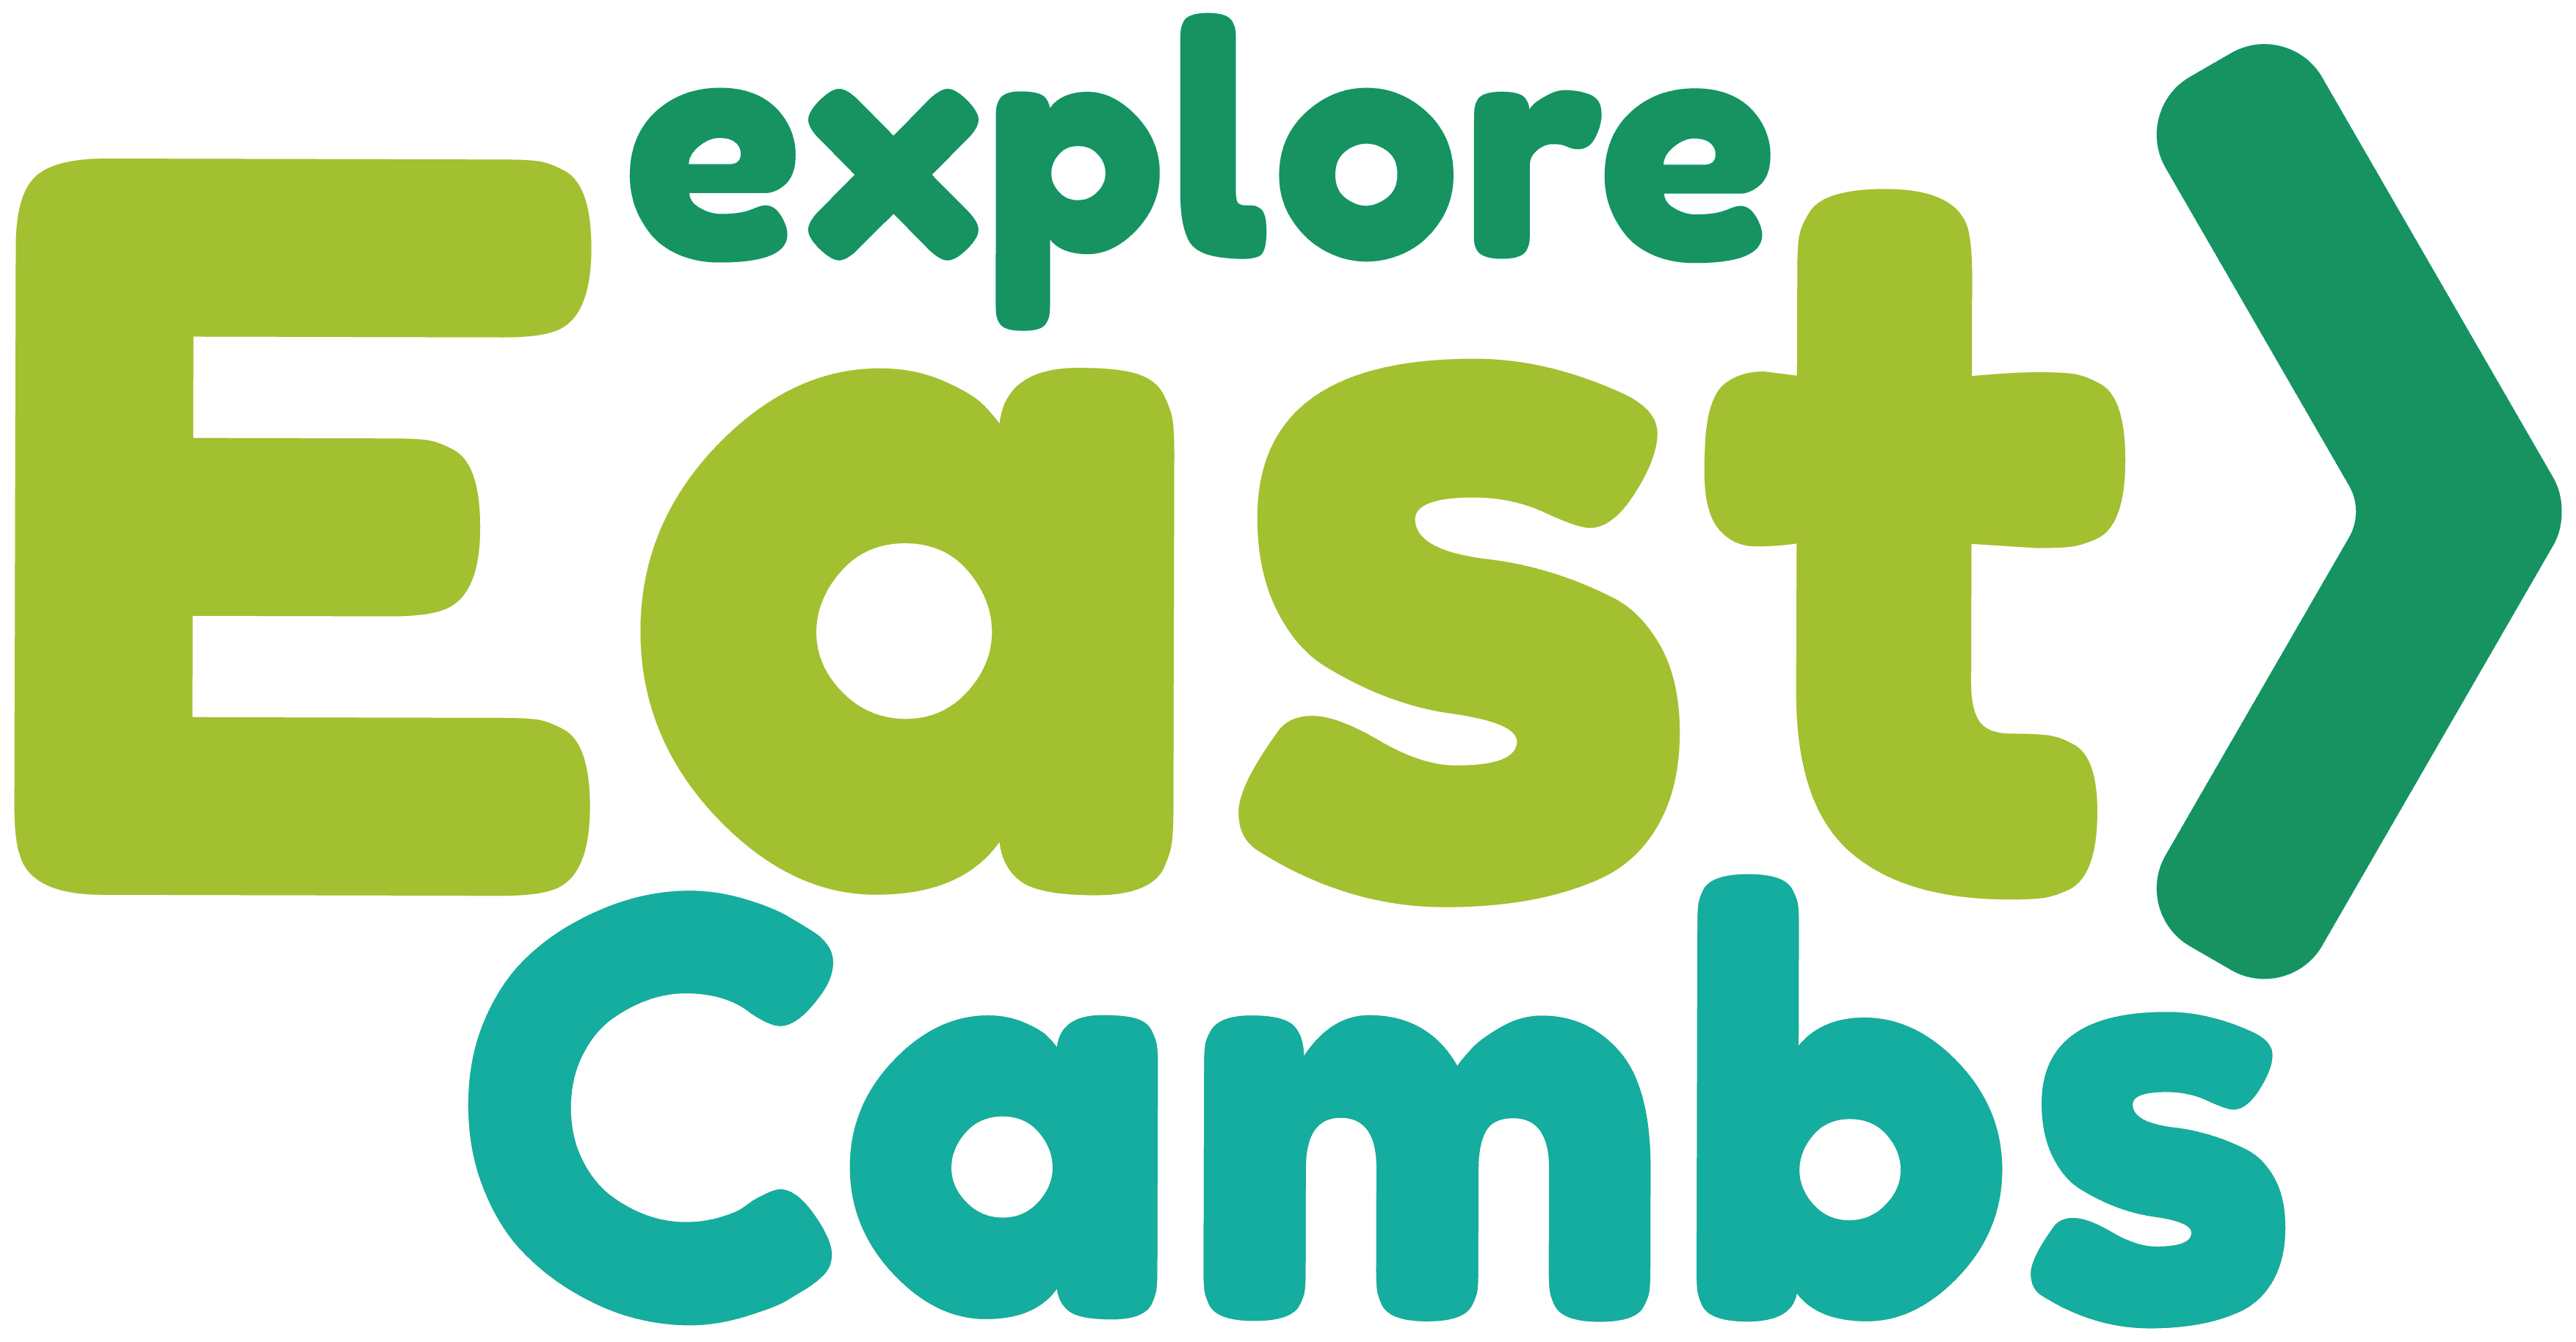 Explore East Cambs | A visitor's guide to East Cambridgeshire